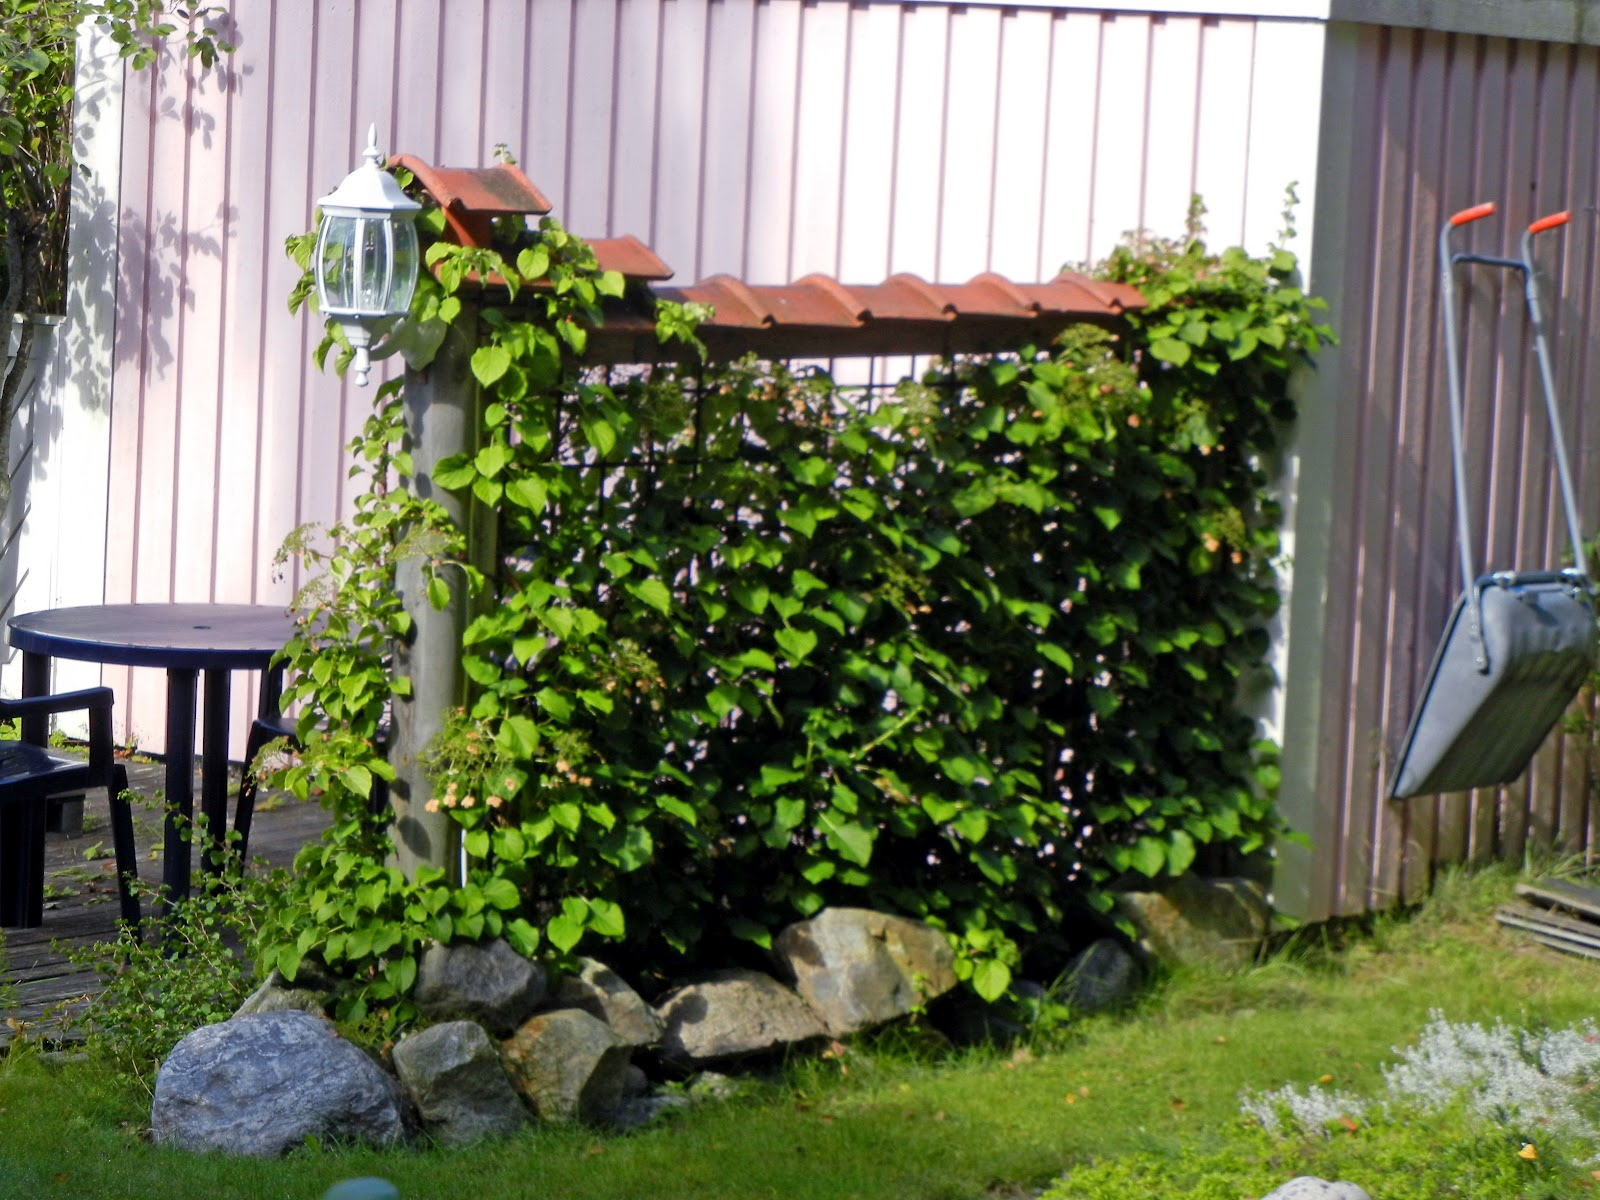 Chain link trellis dressing up your chain link fence